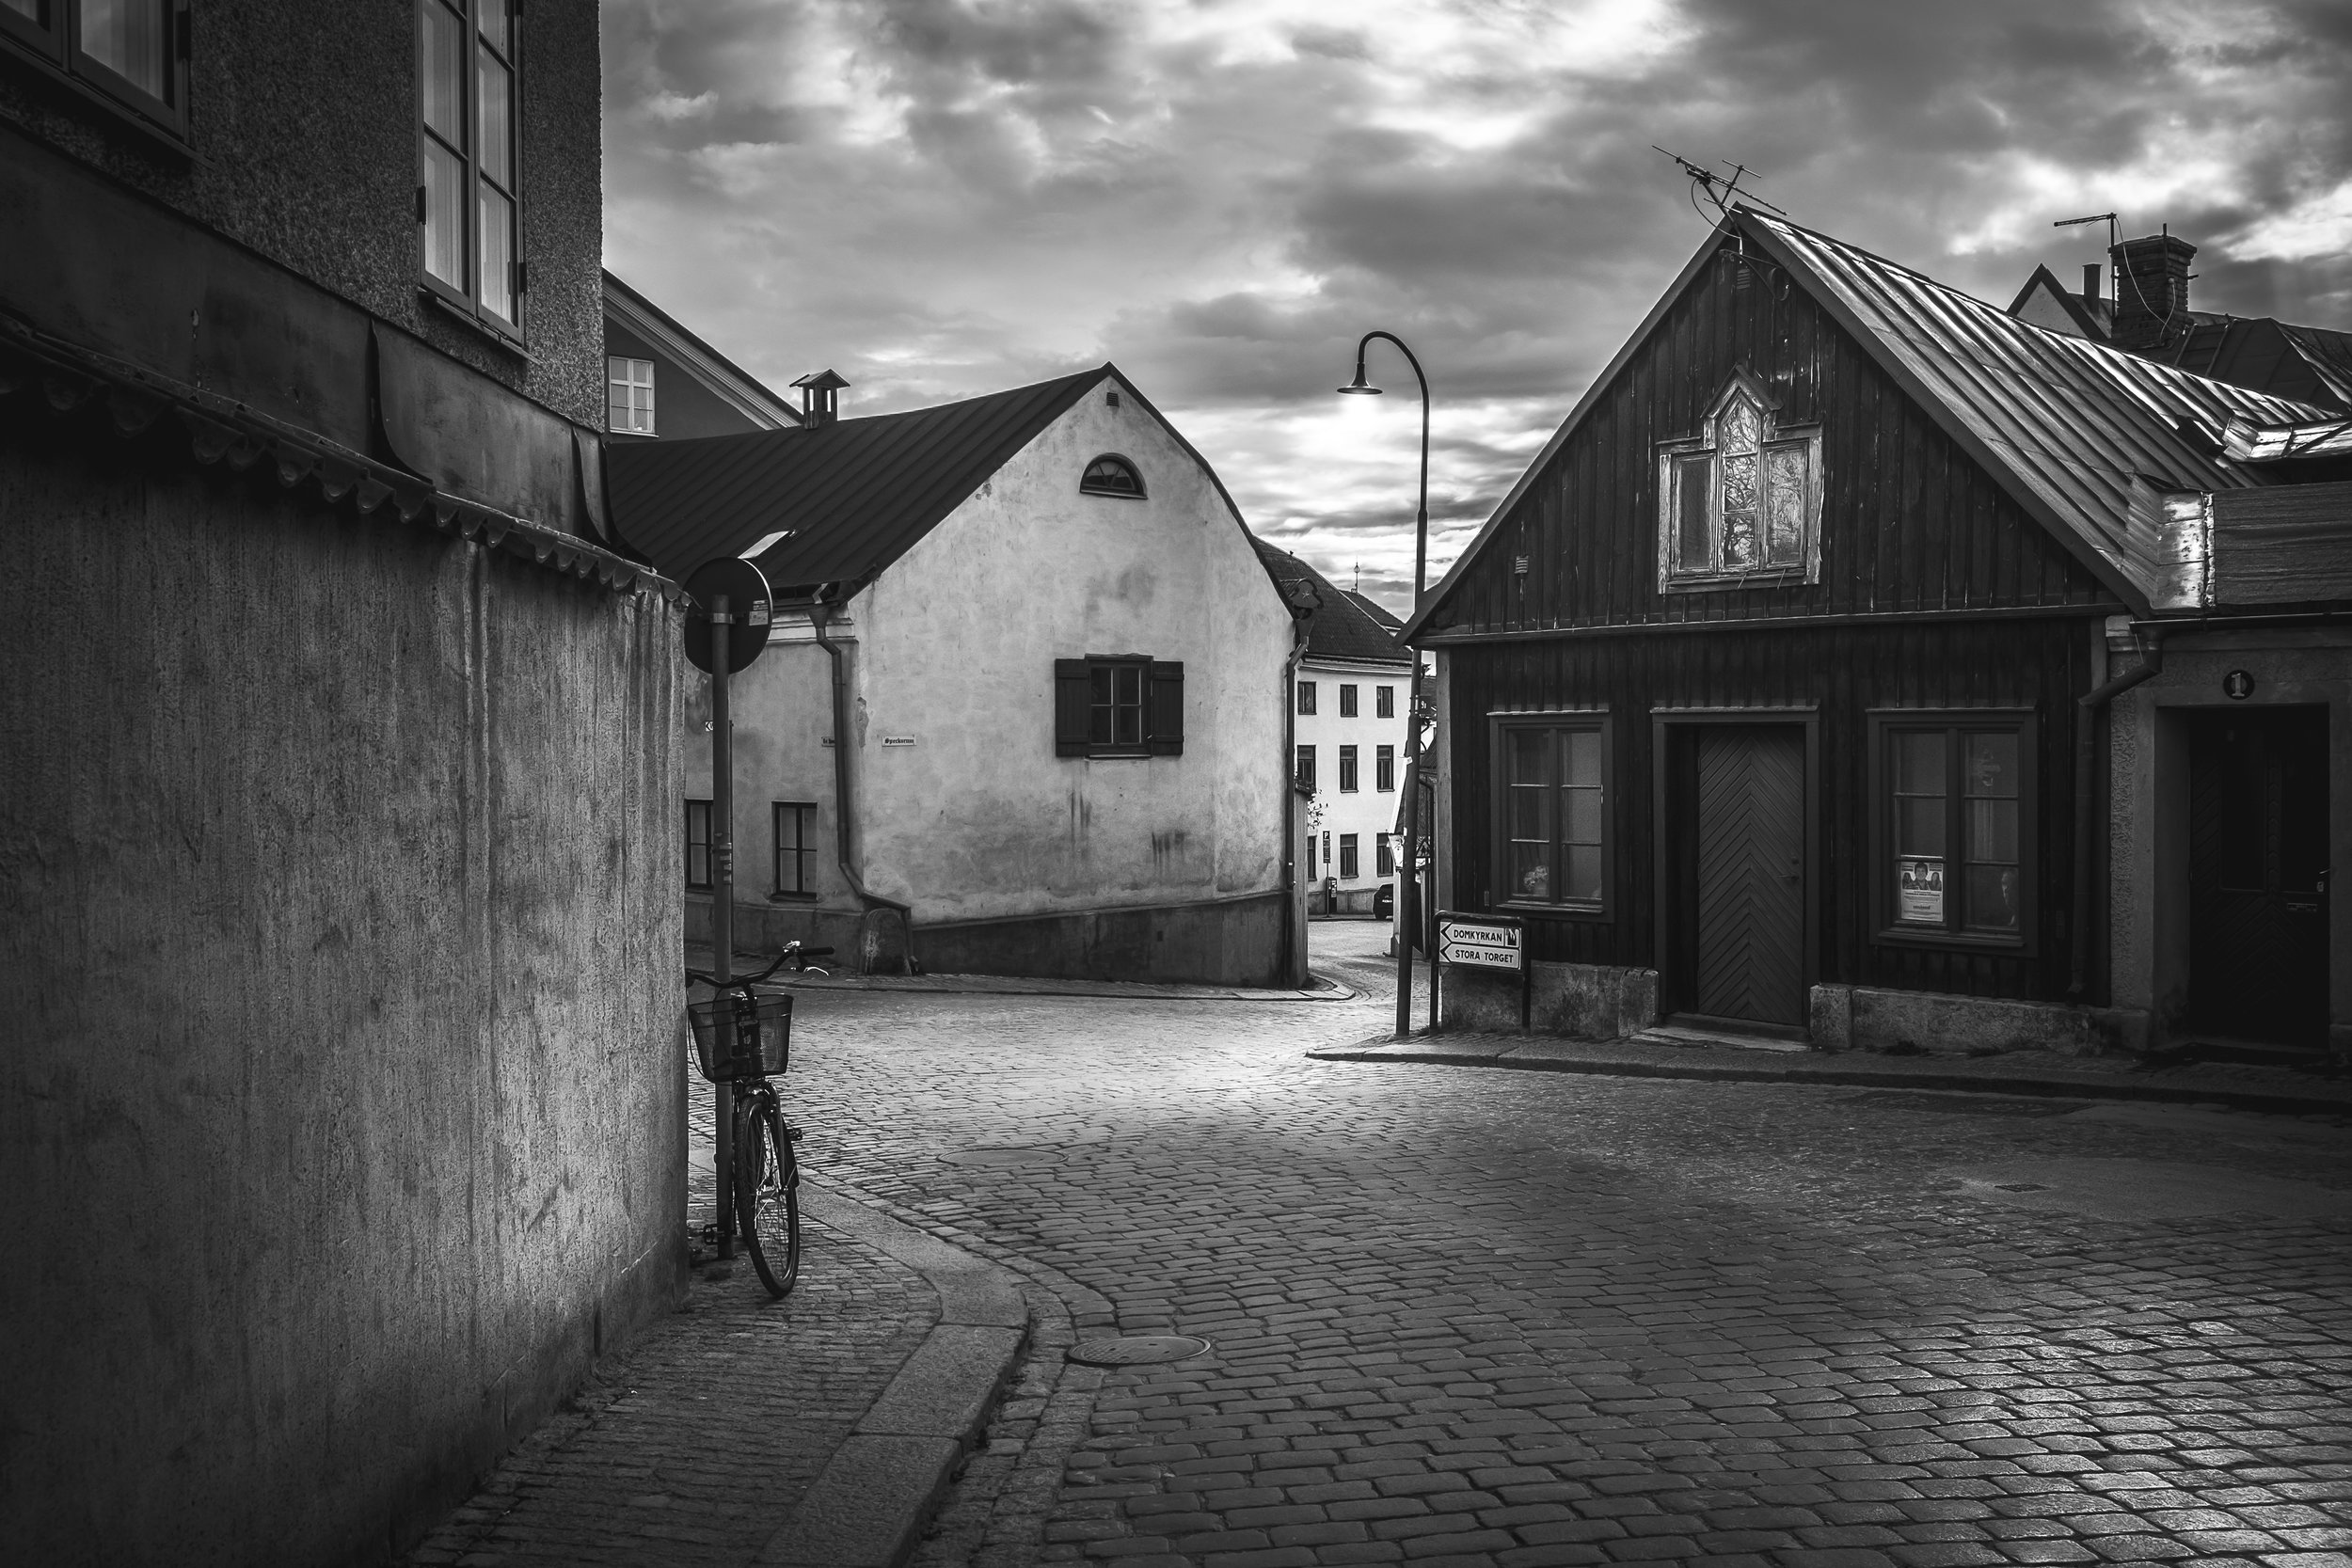 Cobblestone streets in old town Visby